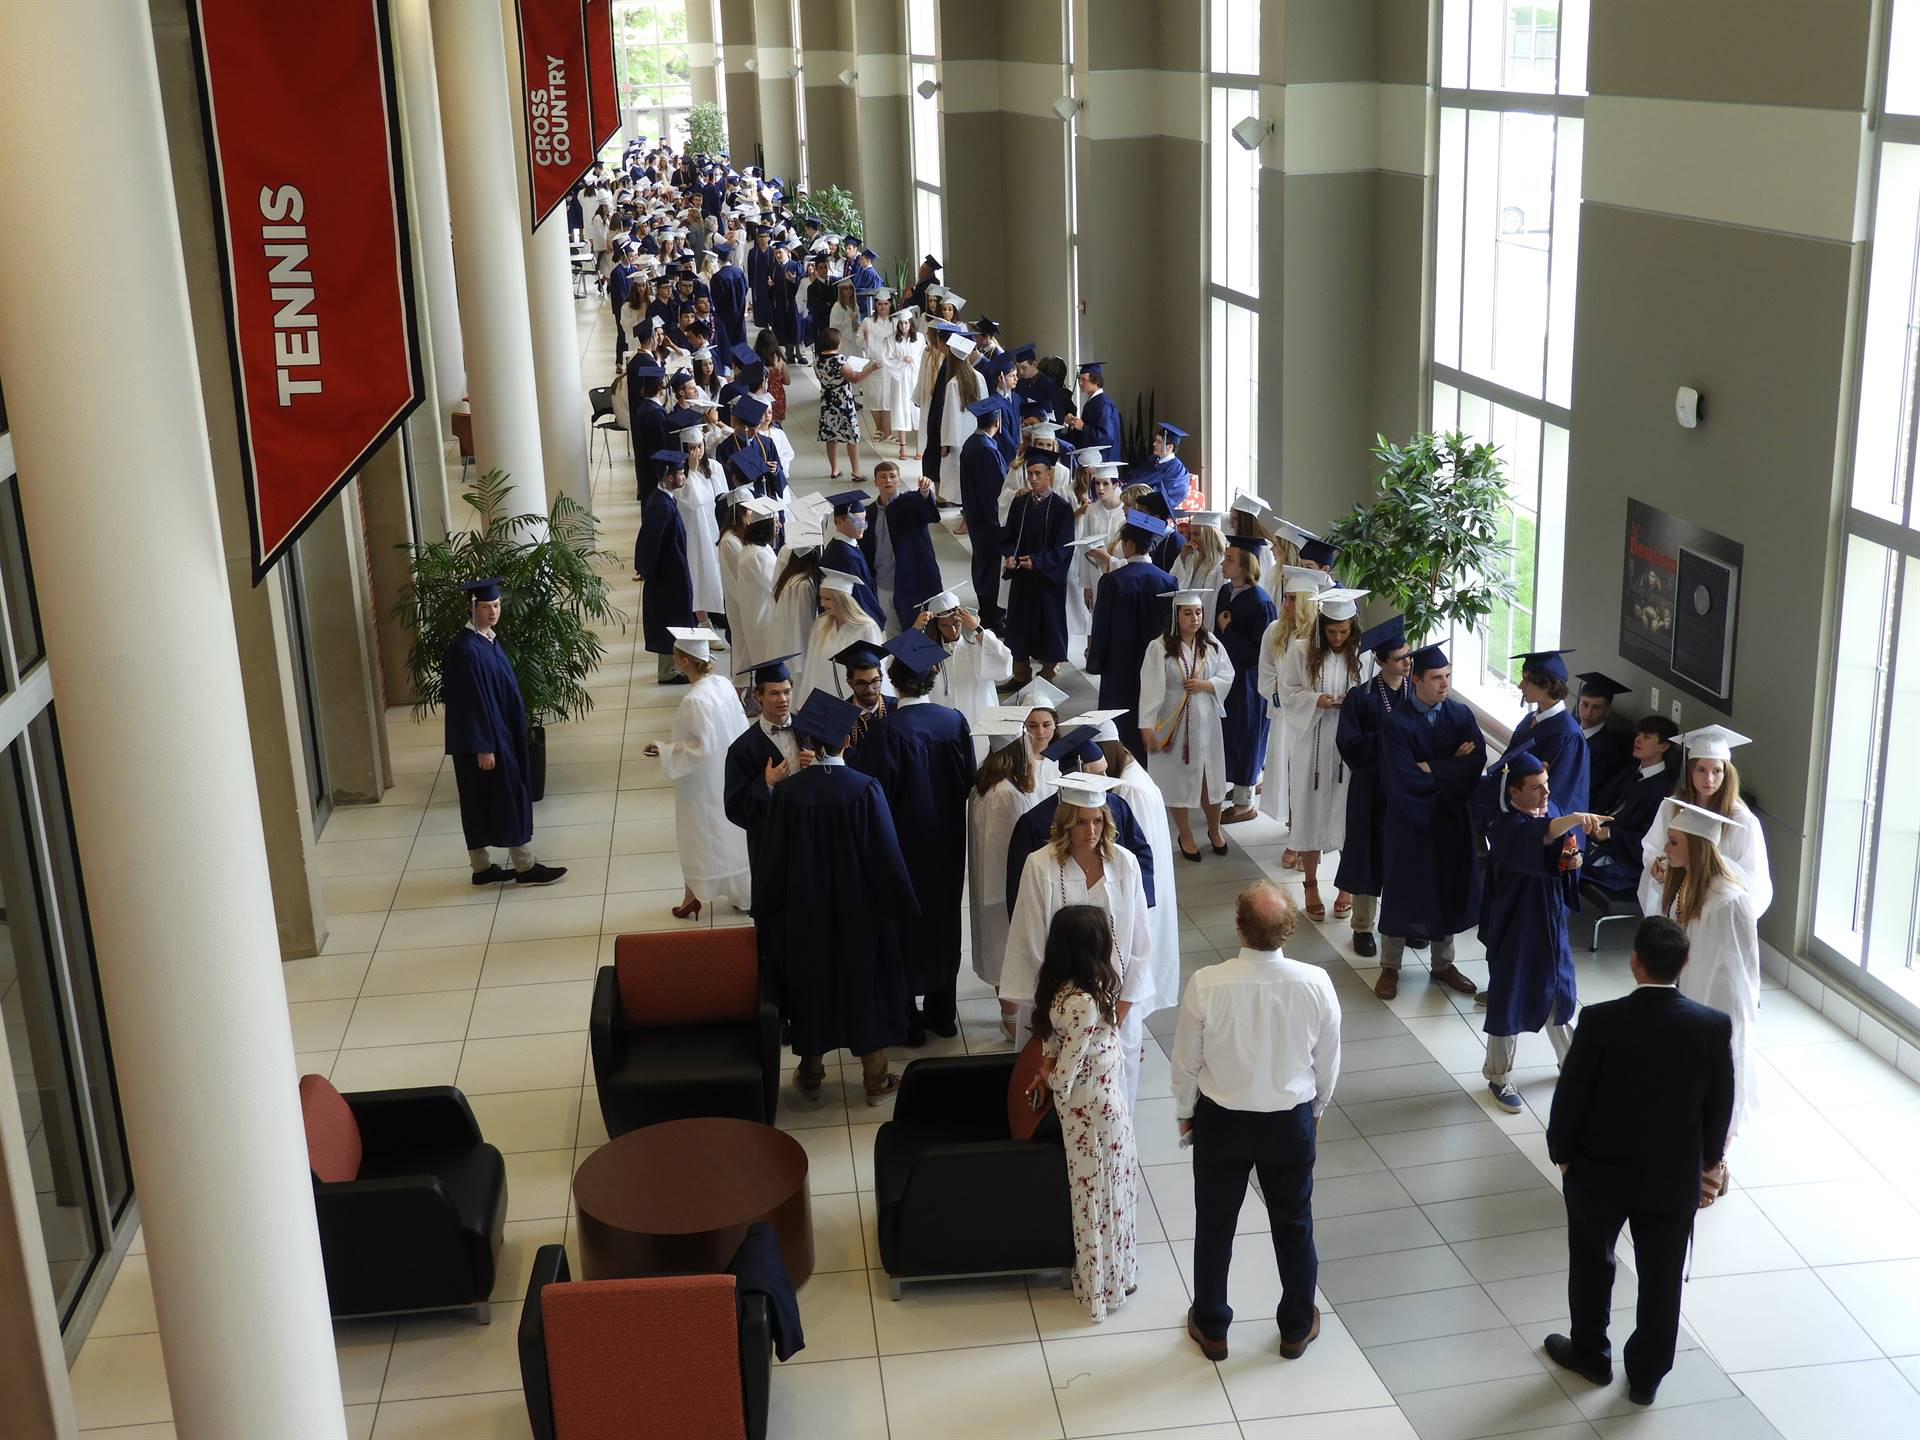 Class of 2018 - Graduates Line Up for Processional